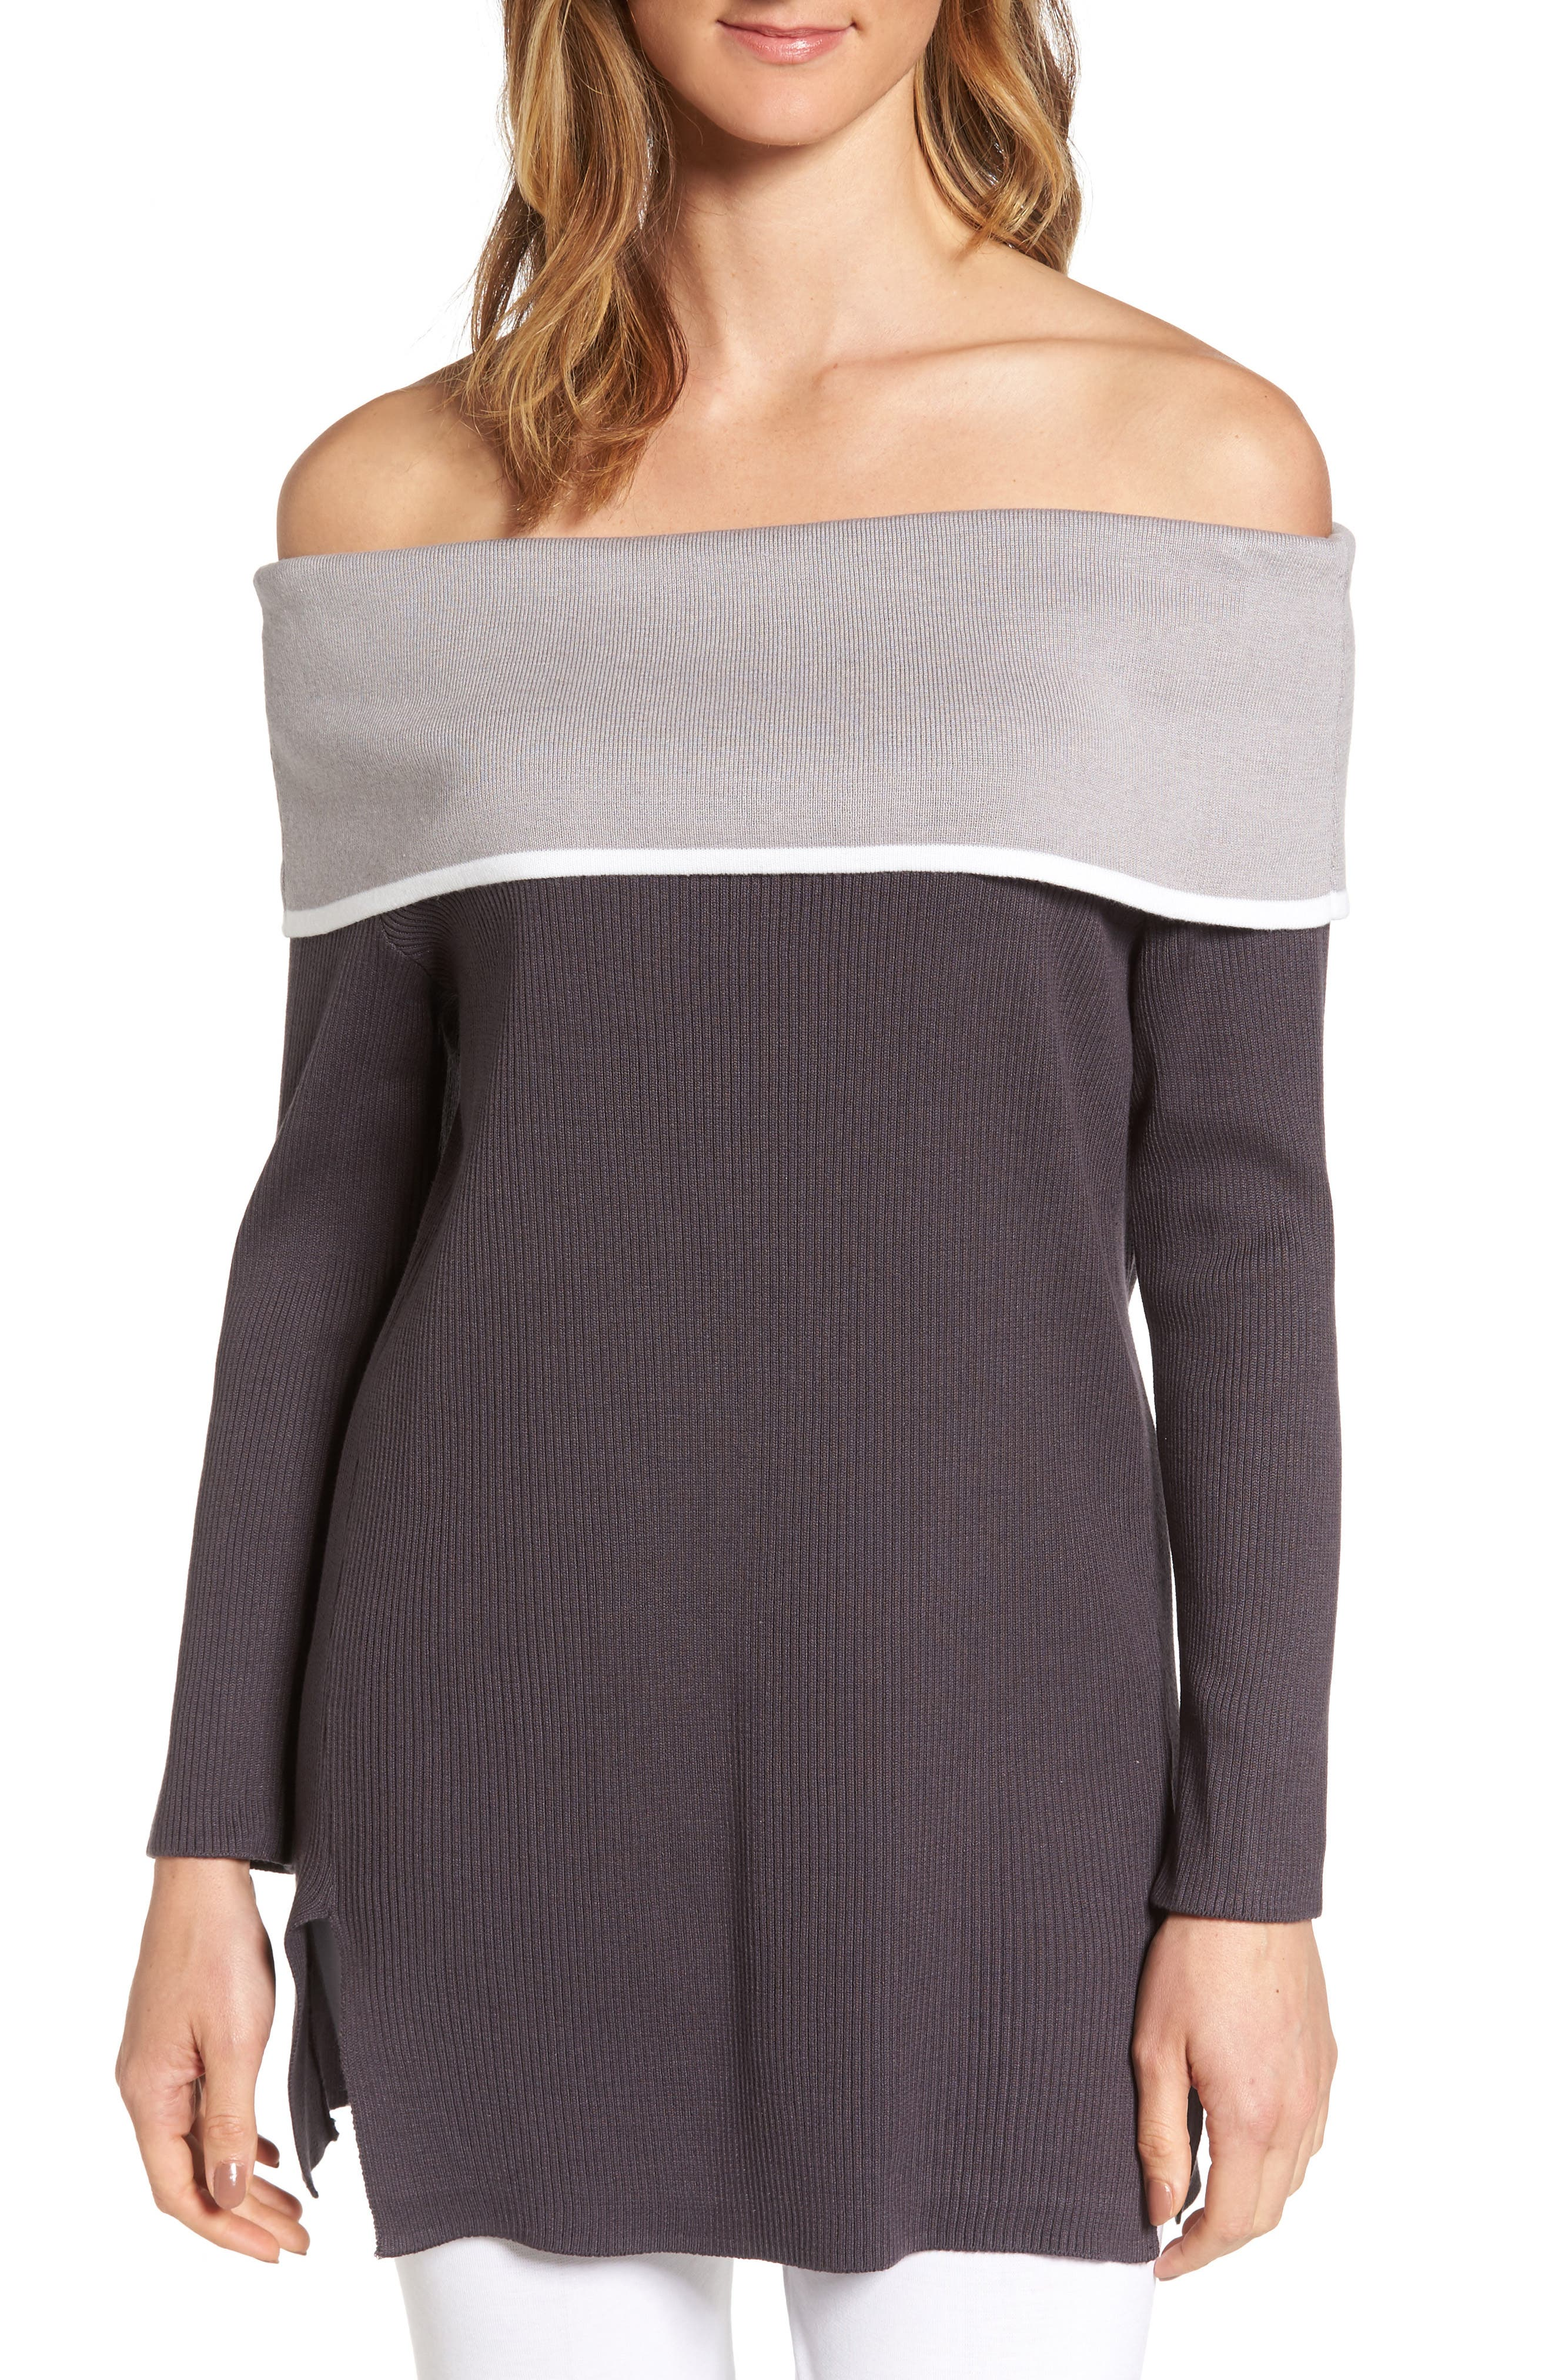 Off the Shoulder Tunic,                             Main thumbnail 1, color,                             Granite/ Sterling/ Ivory